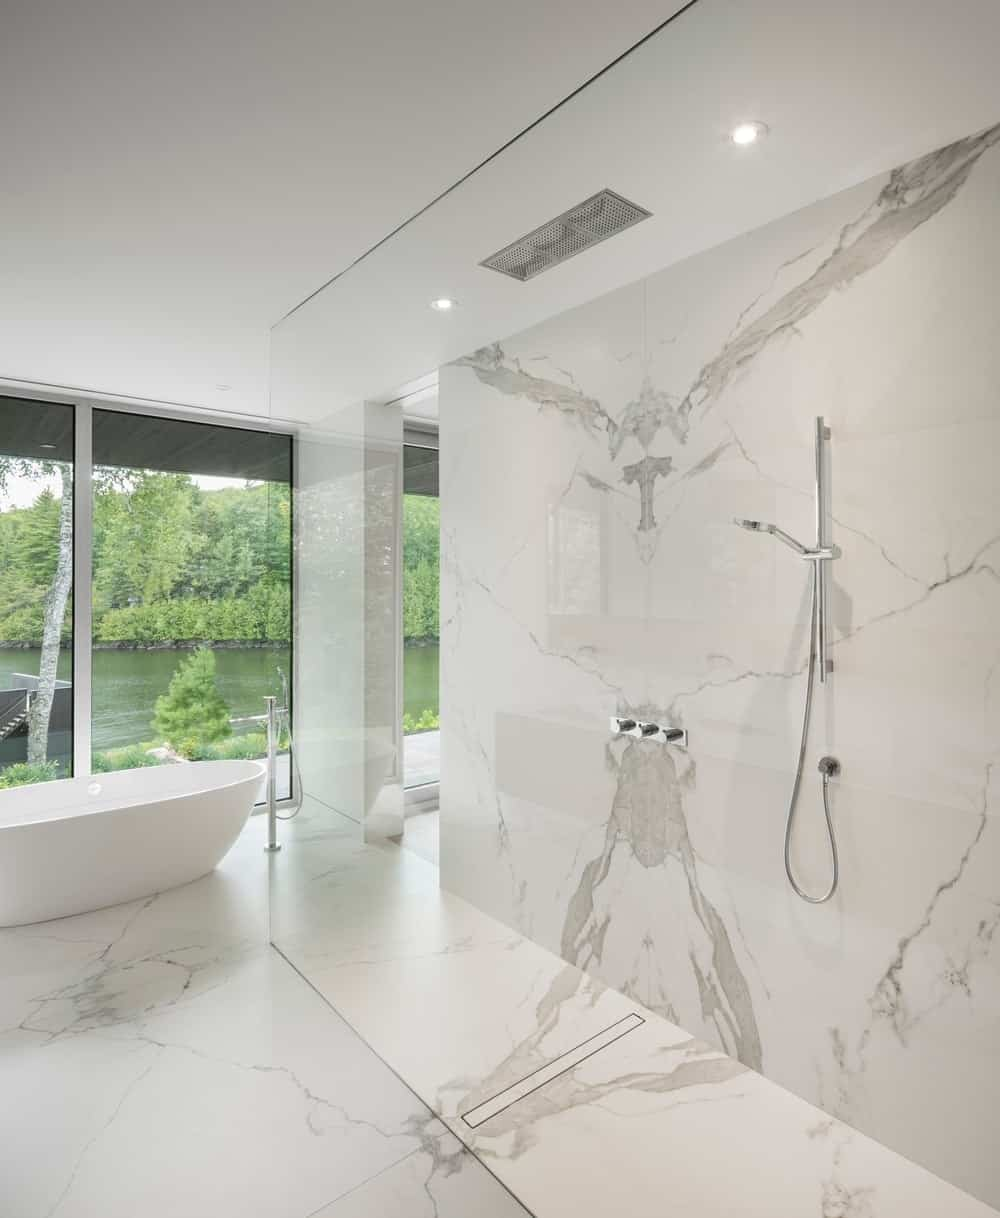 Master Bathroom Boasts An Open Shower And Freestanding Tub Along With White  Contemporary Walls And Glass Windows.MU Architecture